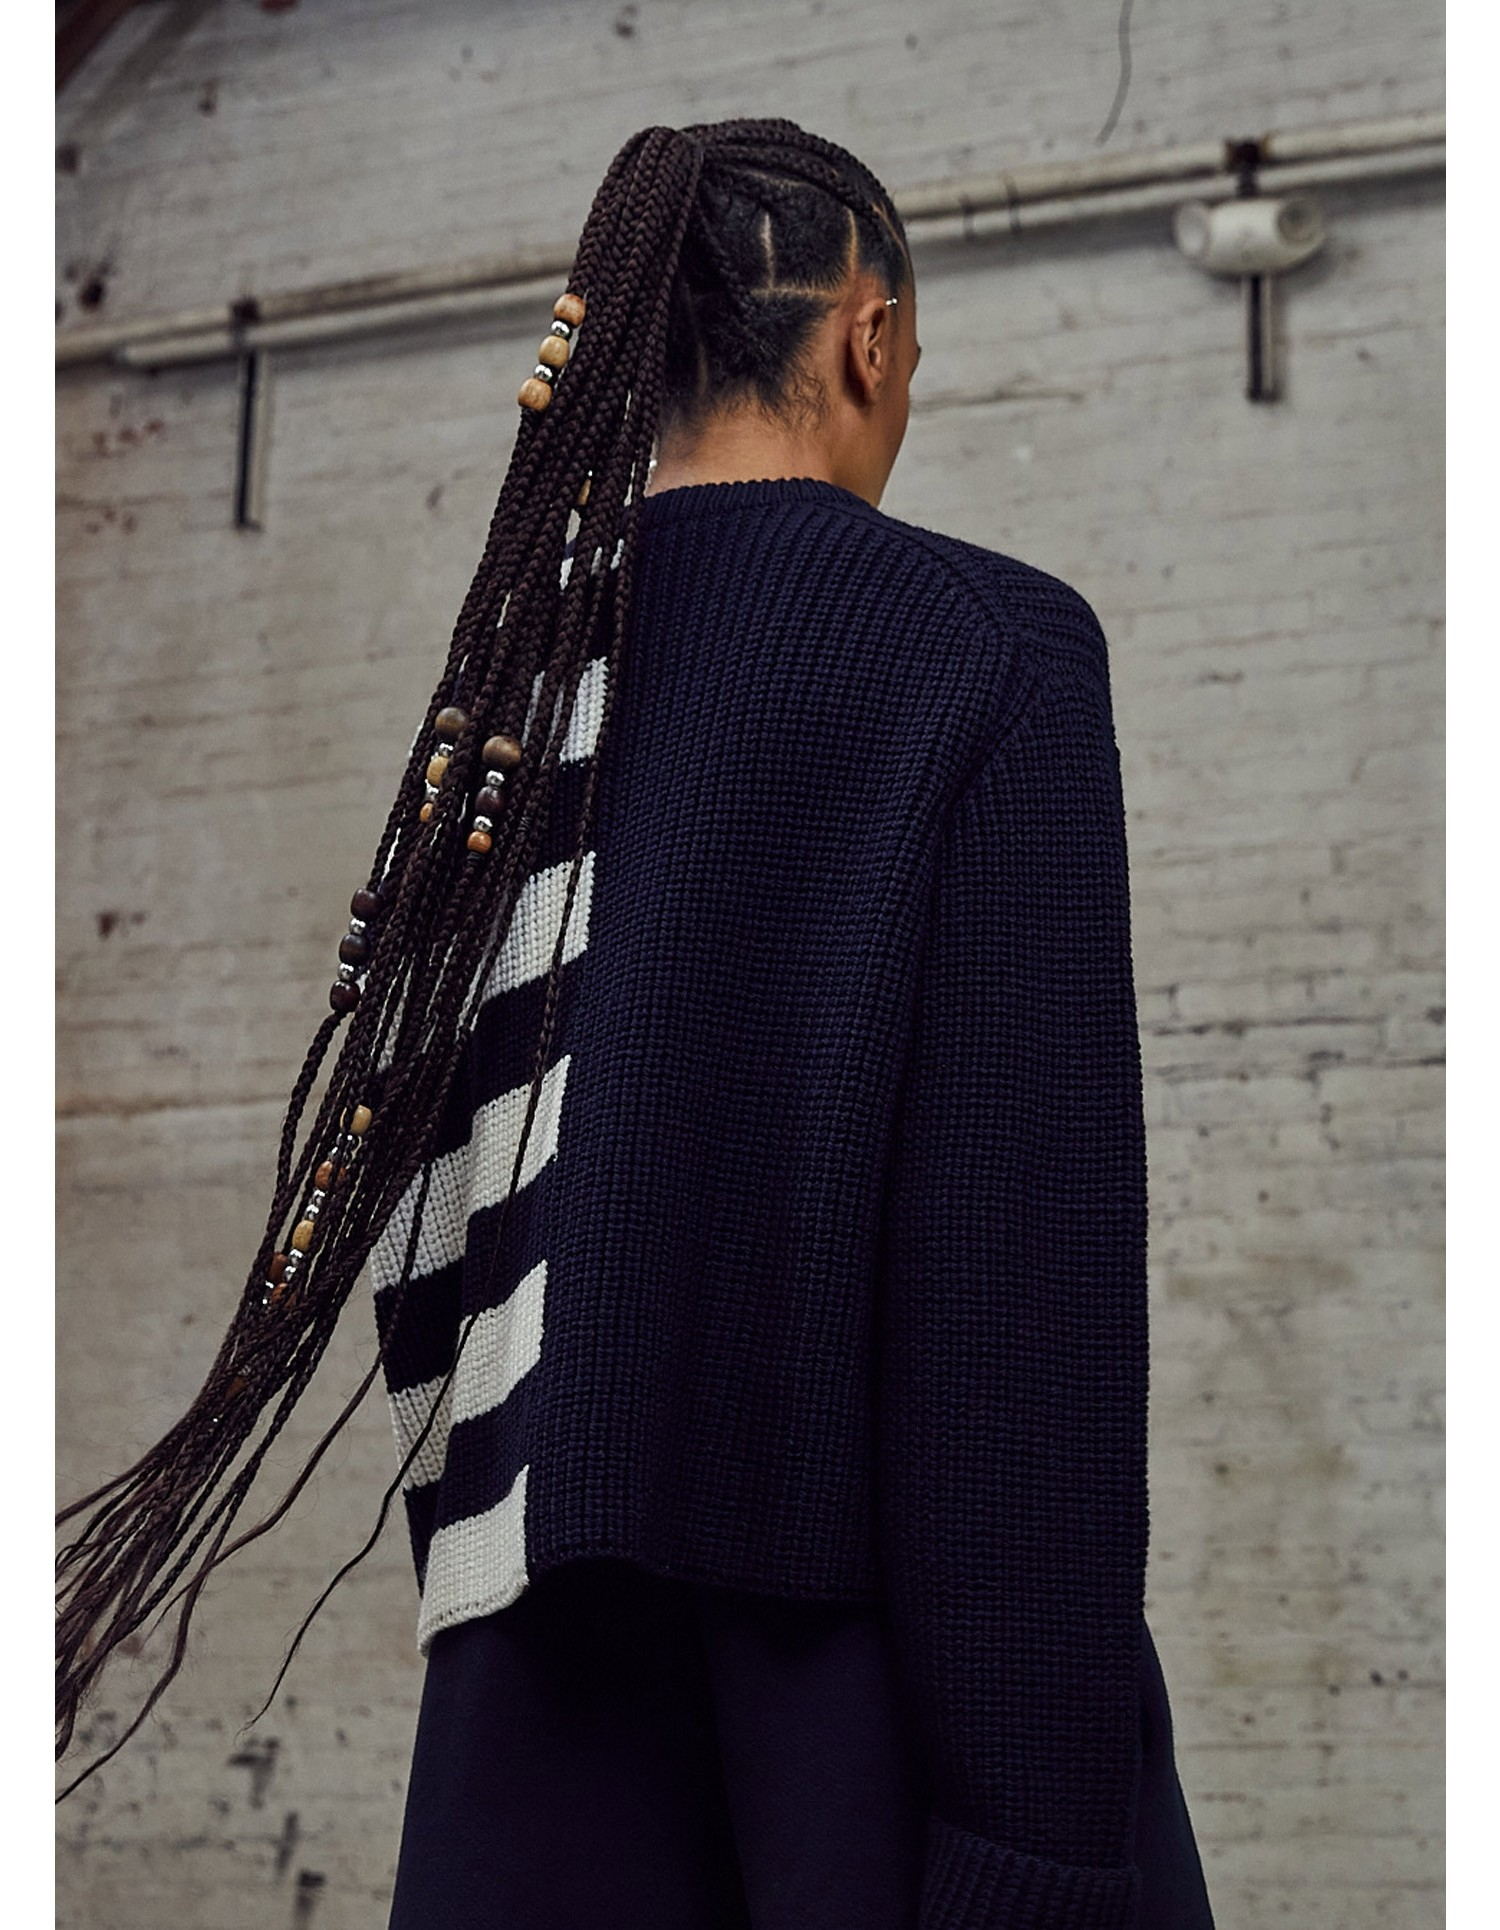 MONSE Half Stripe Cable Sweater in Midnight and Ivory on Model Back View